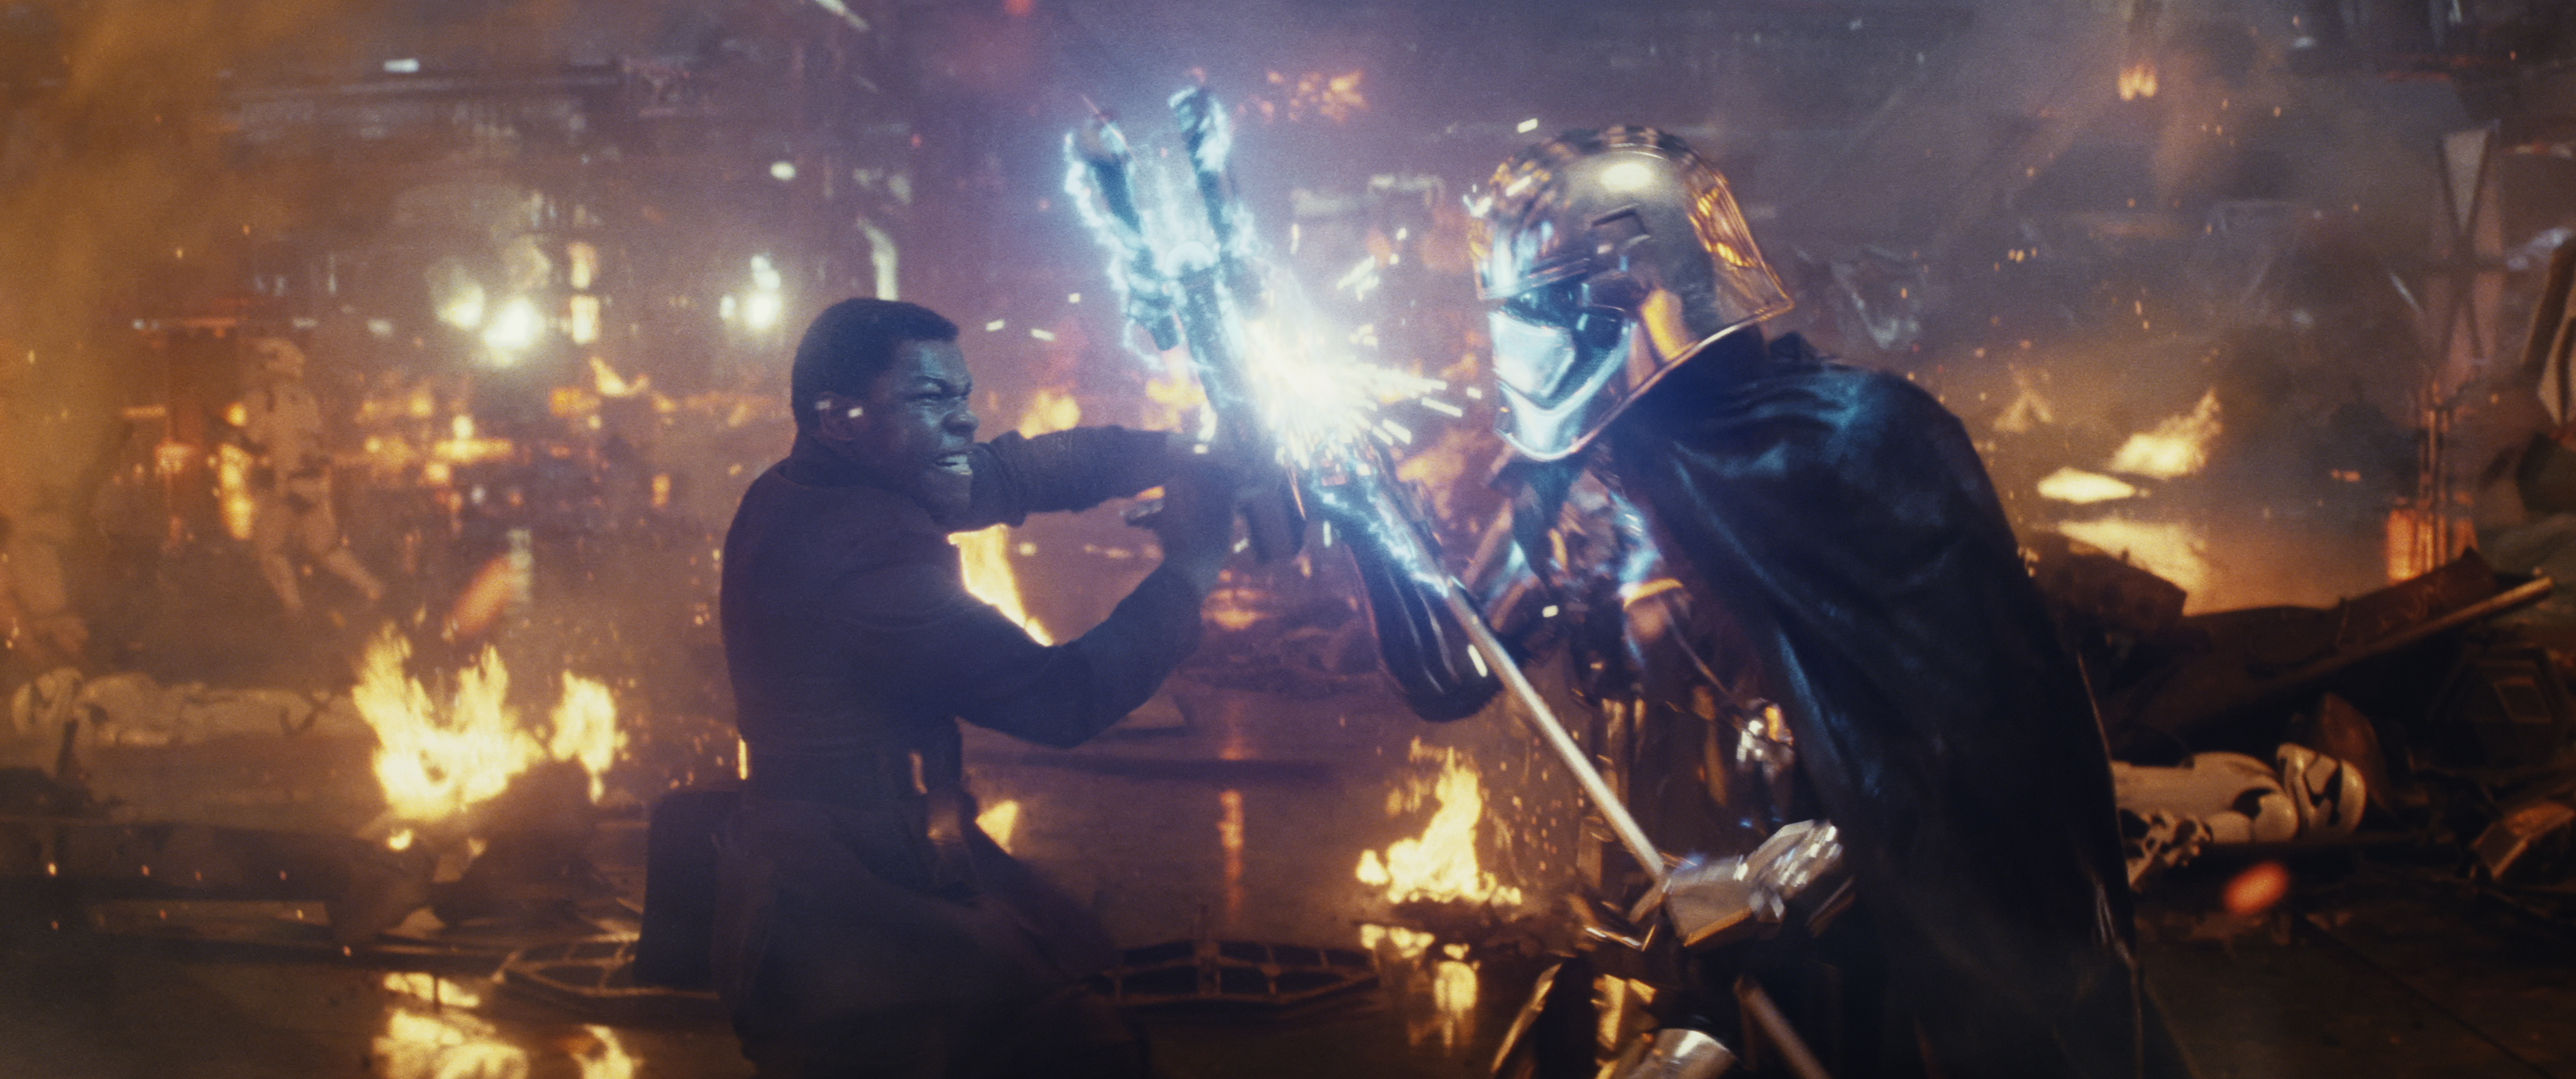 Star-Wars-The-Last-Jedi-Finn-vs-Captain-Phasma